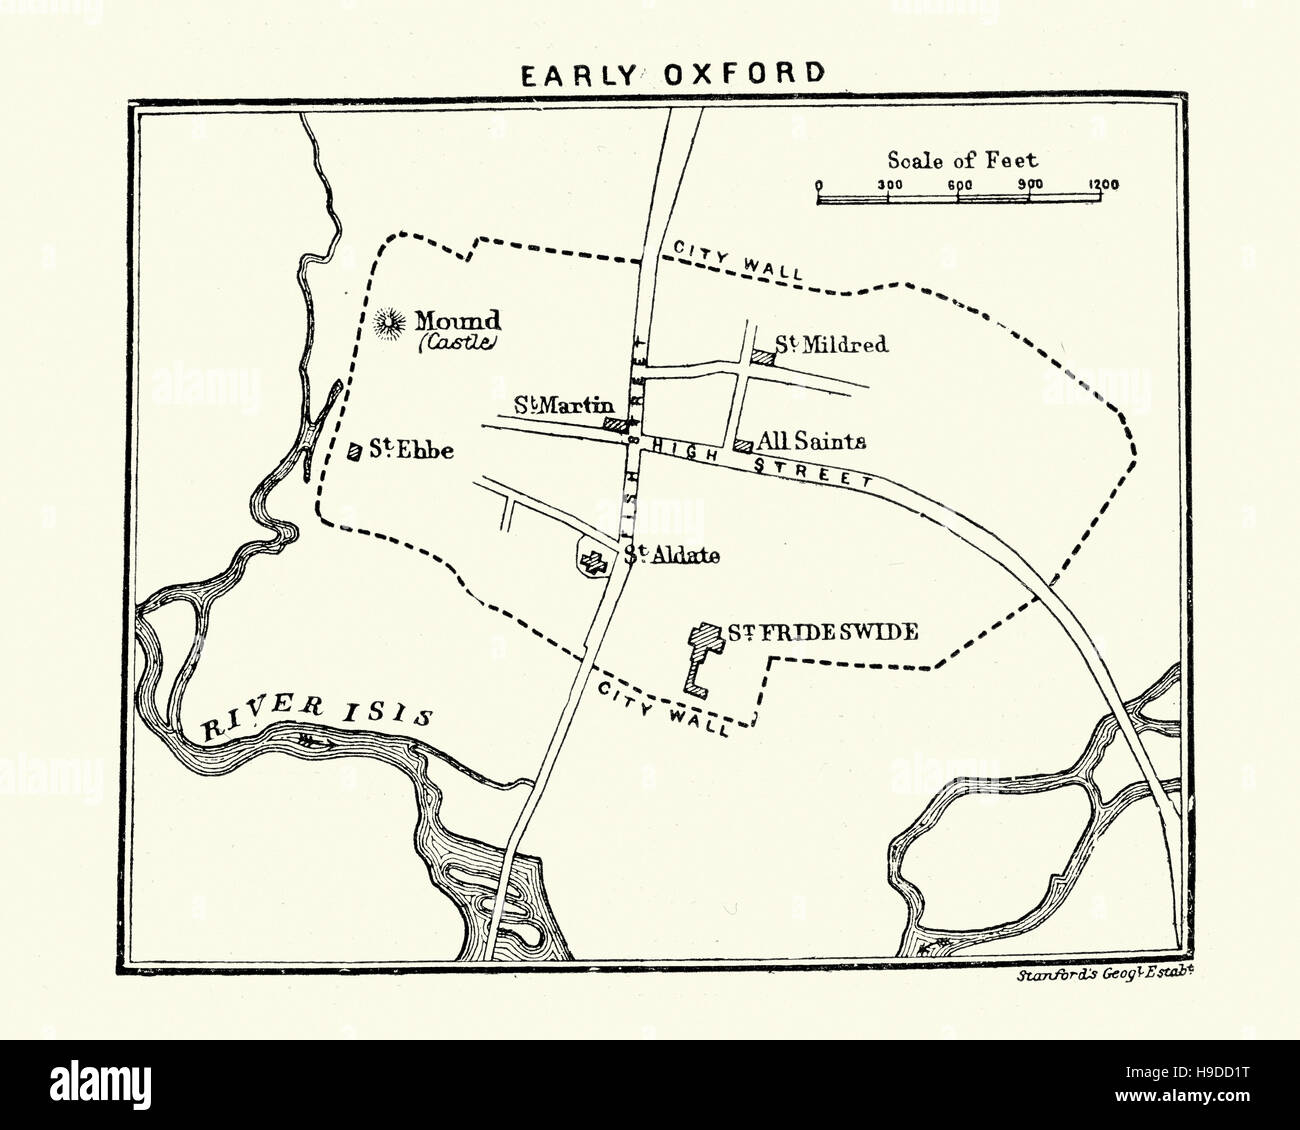 Map Of Early Oxford England Stock Photo 126300100 Alamy